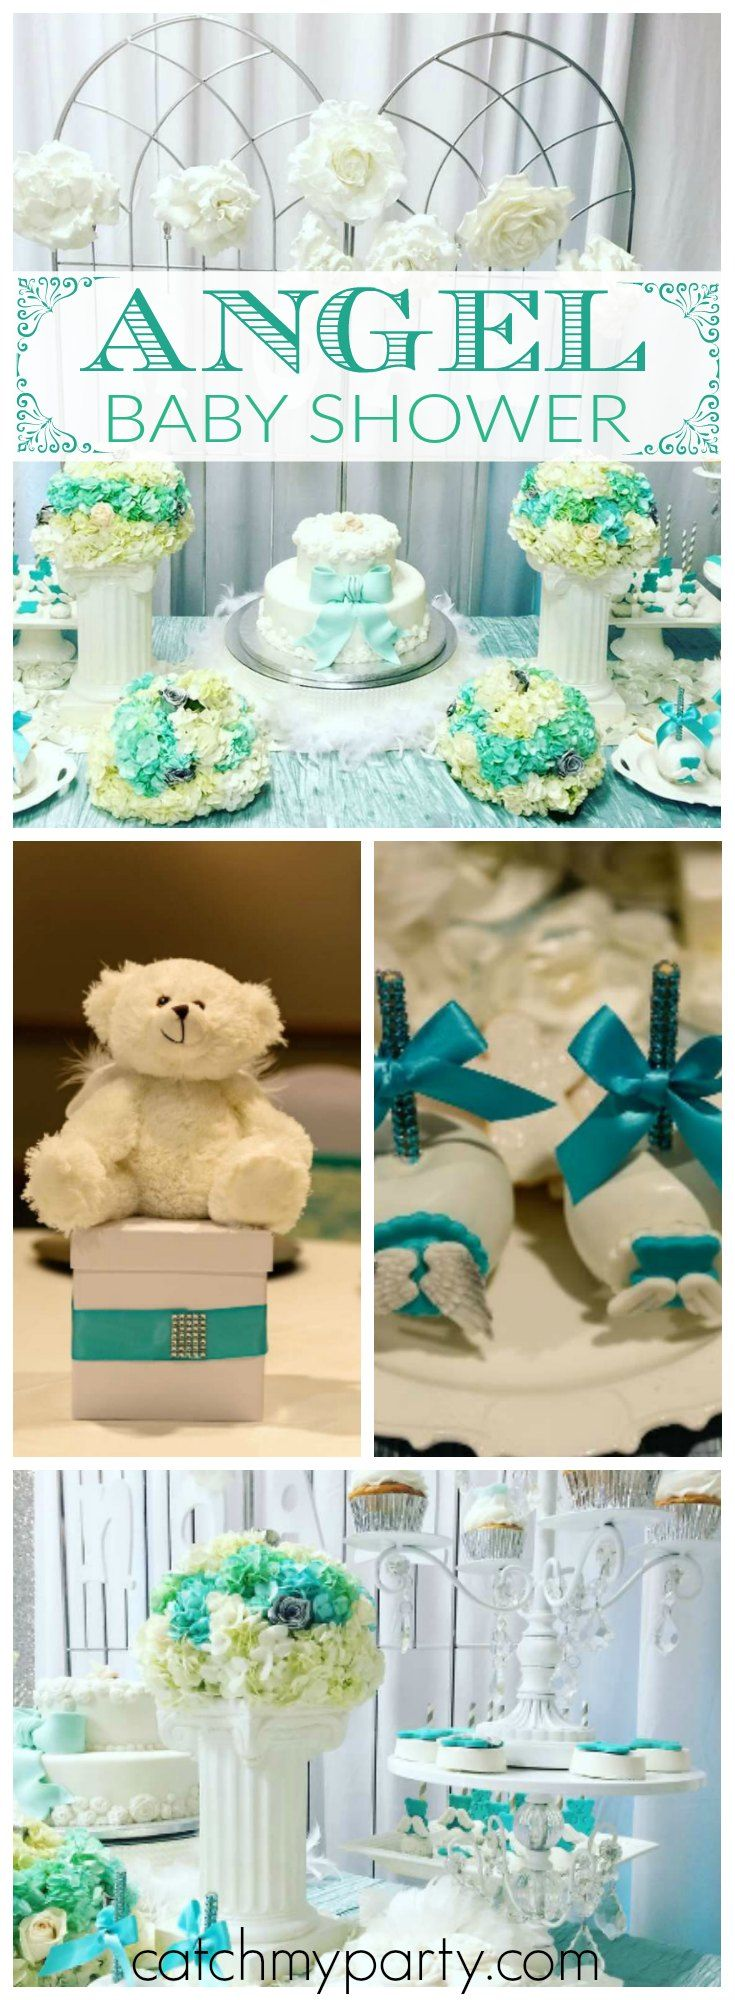 What a lovely angel themed baby shower